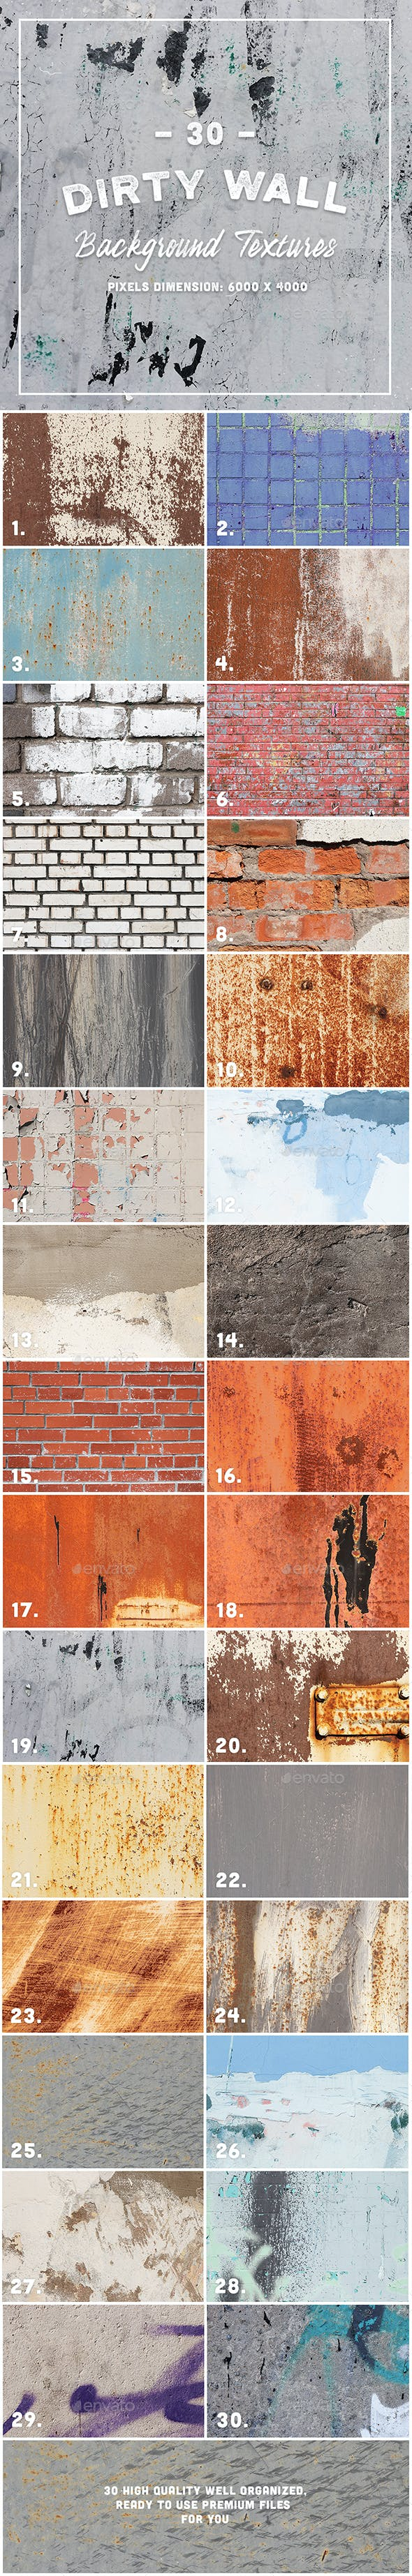 30 Dirty Wall Background Textures - 3DOcean Item for Sale